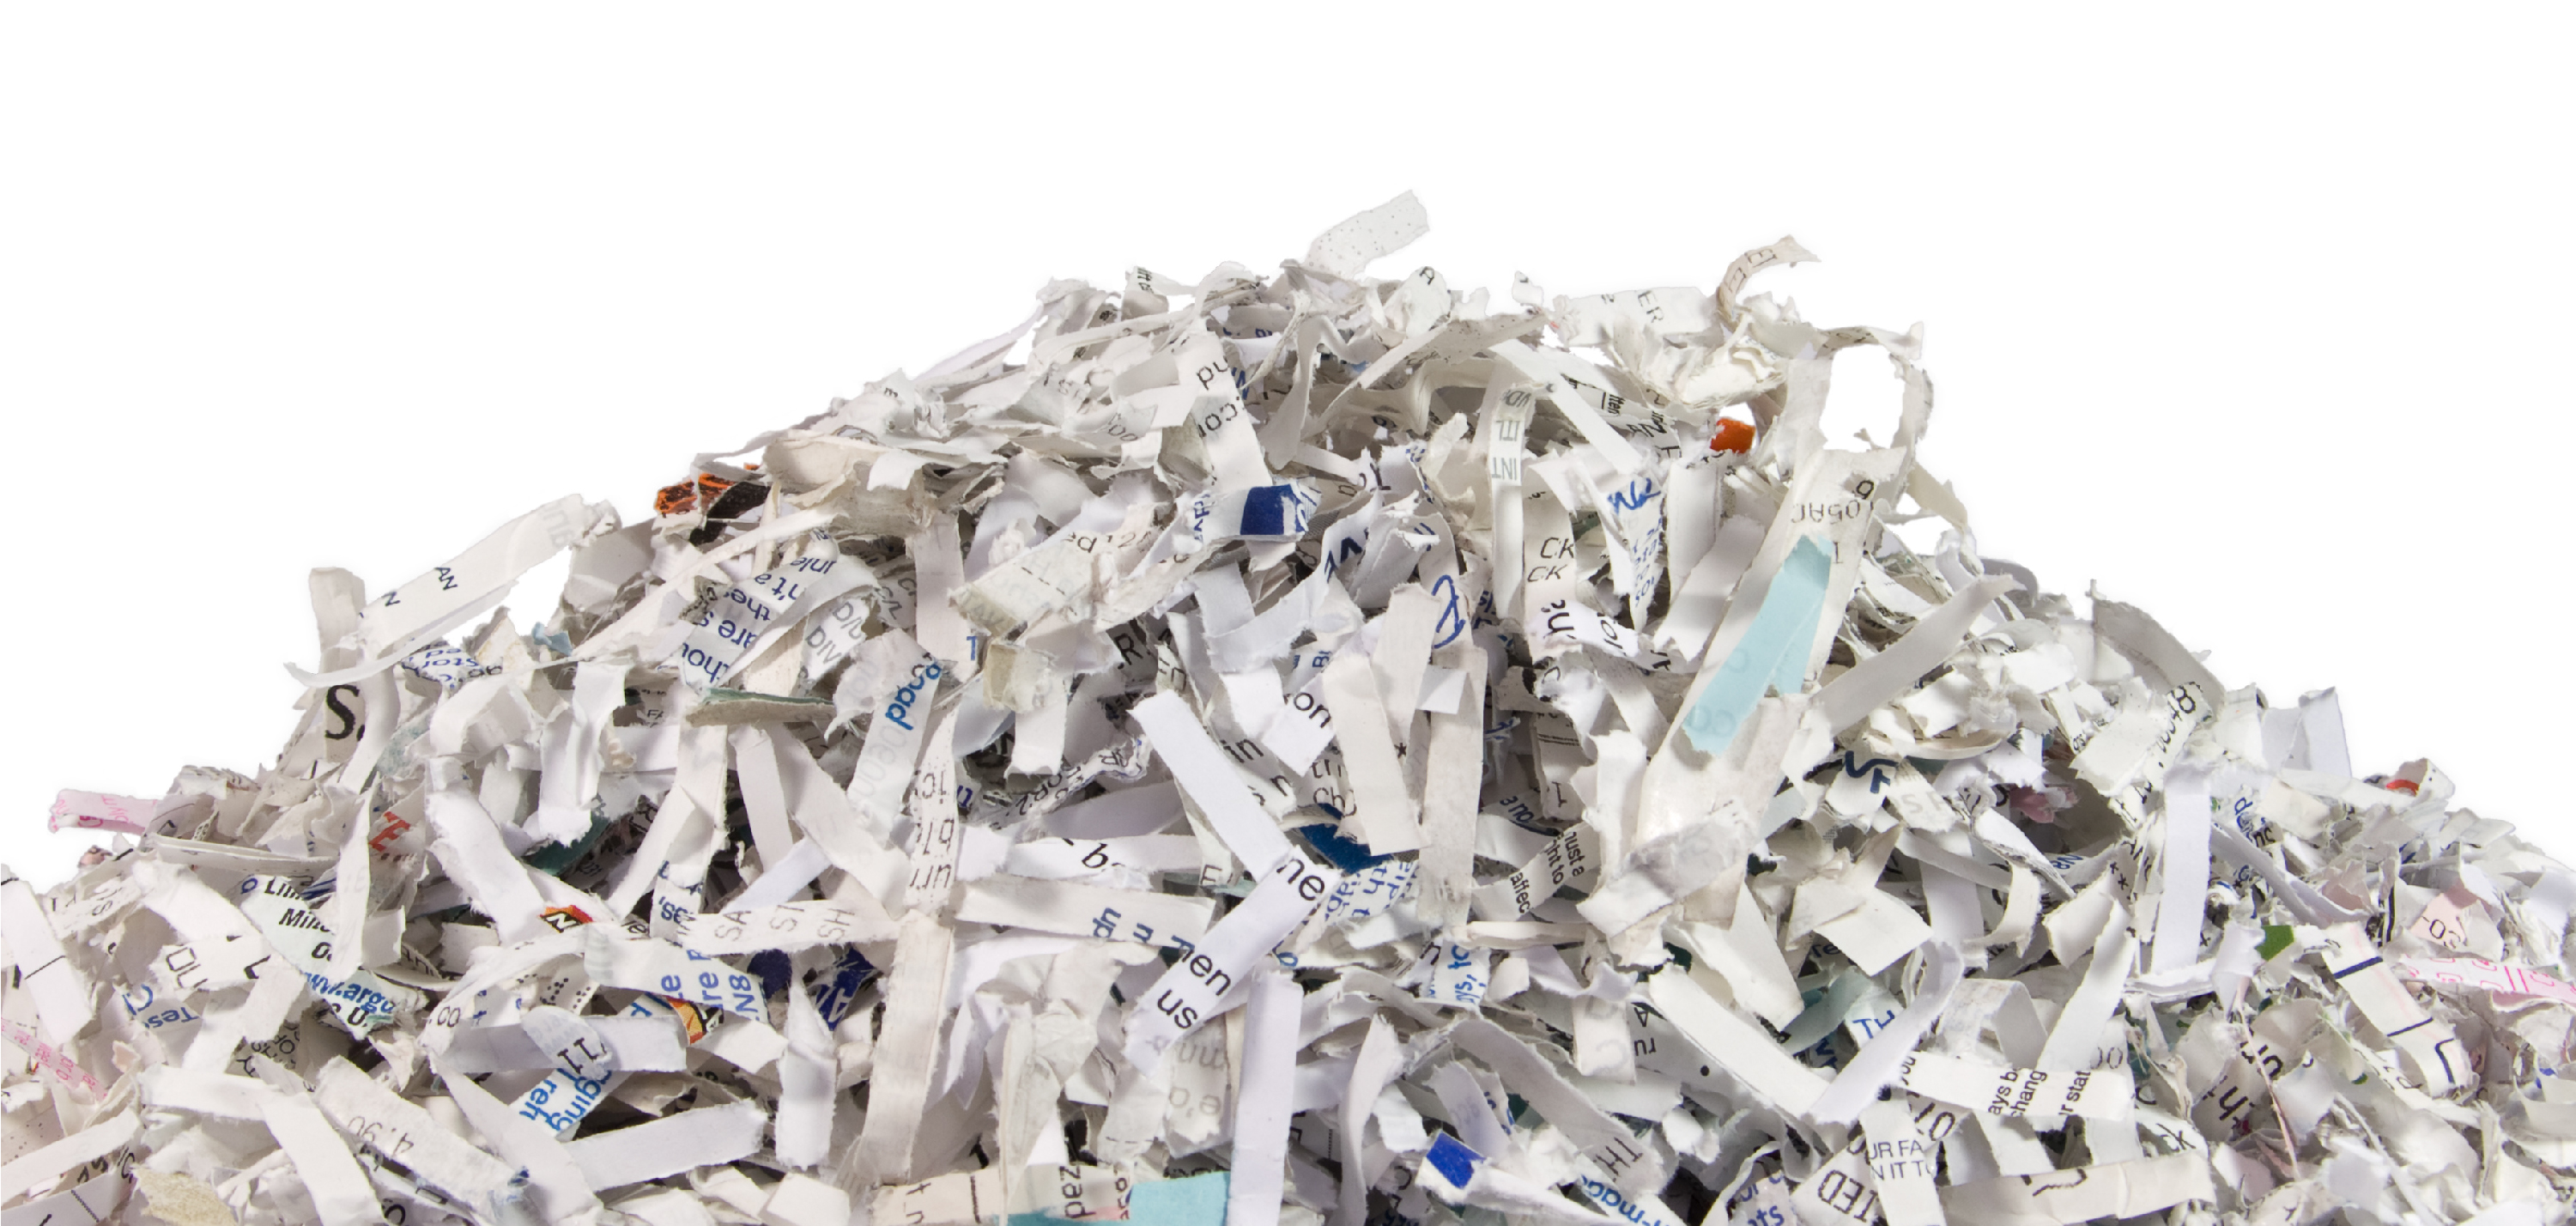 Image of a pile of shredded paper.